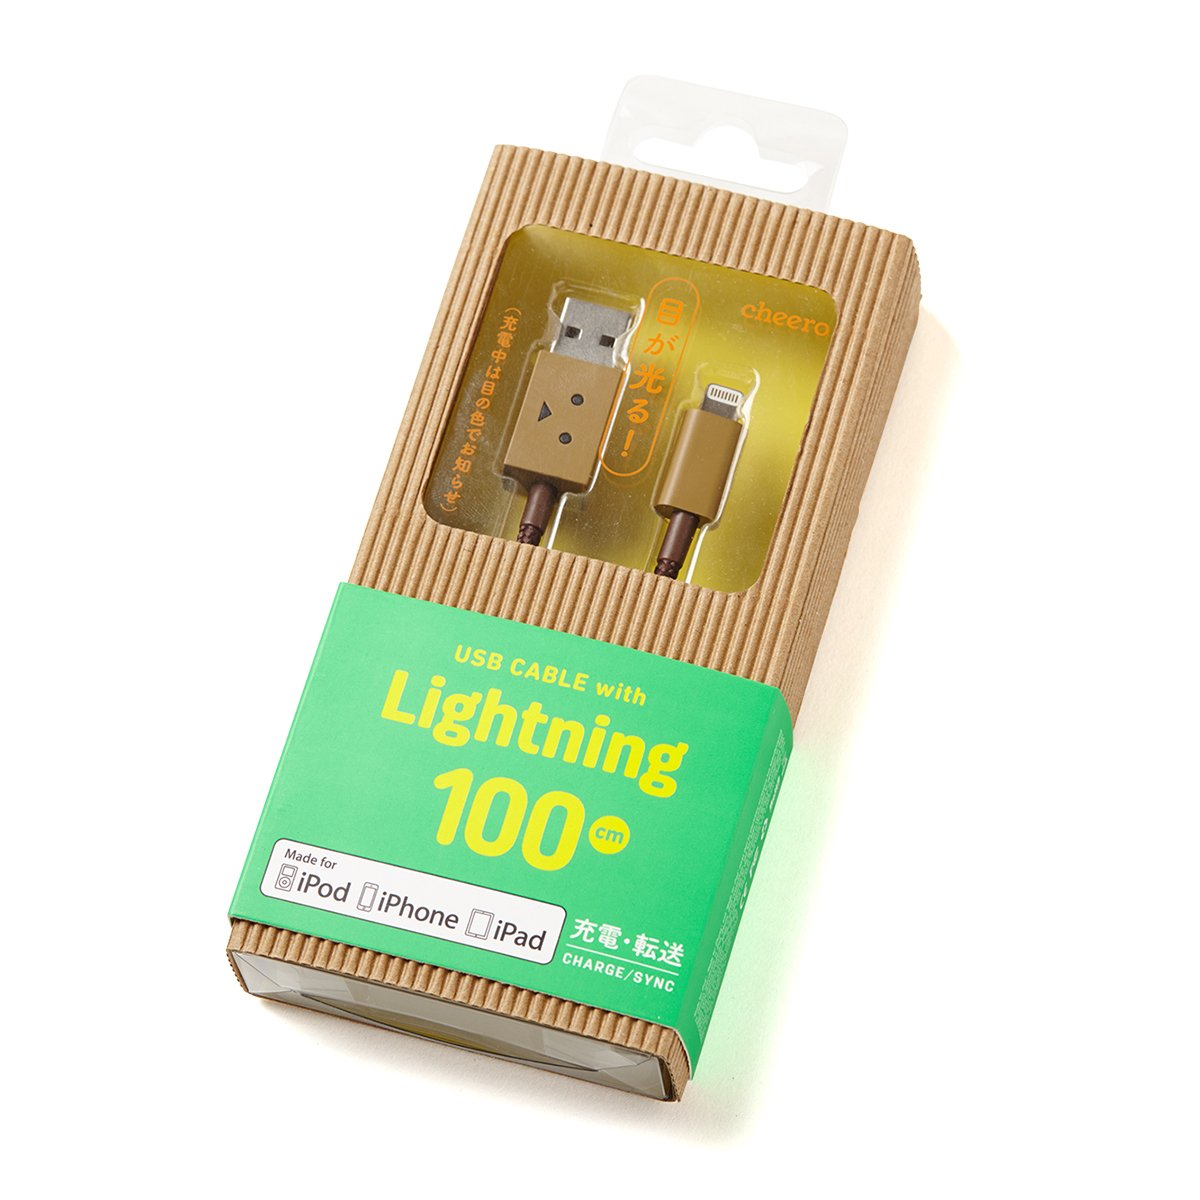 DANBOARD USB Cable with Lightning connector (100cm)/MFi 認証取得済み